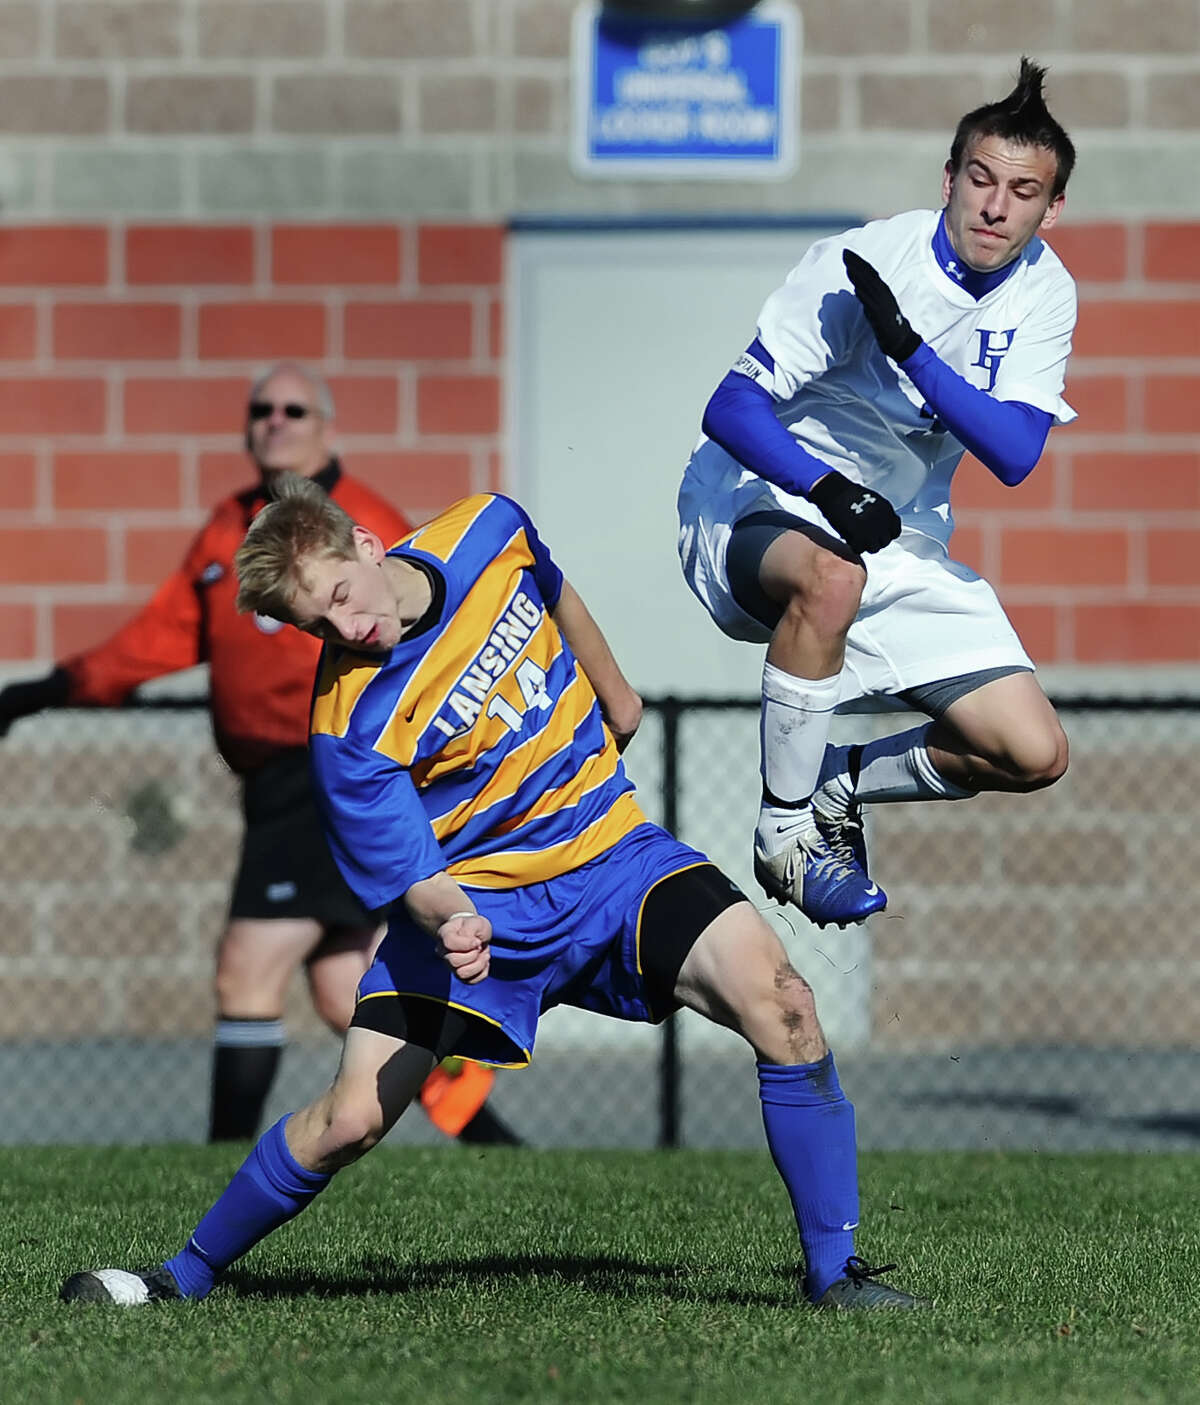 Hoosick Falls' Chris LaCroix, right, braces for impact after clearing the ball by Lansing's Jake Palladino during Class C NYSPHSAA Boys Soccer Championship semifinal played on Saturday, November 17, at Middletown High School.